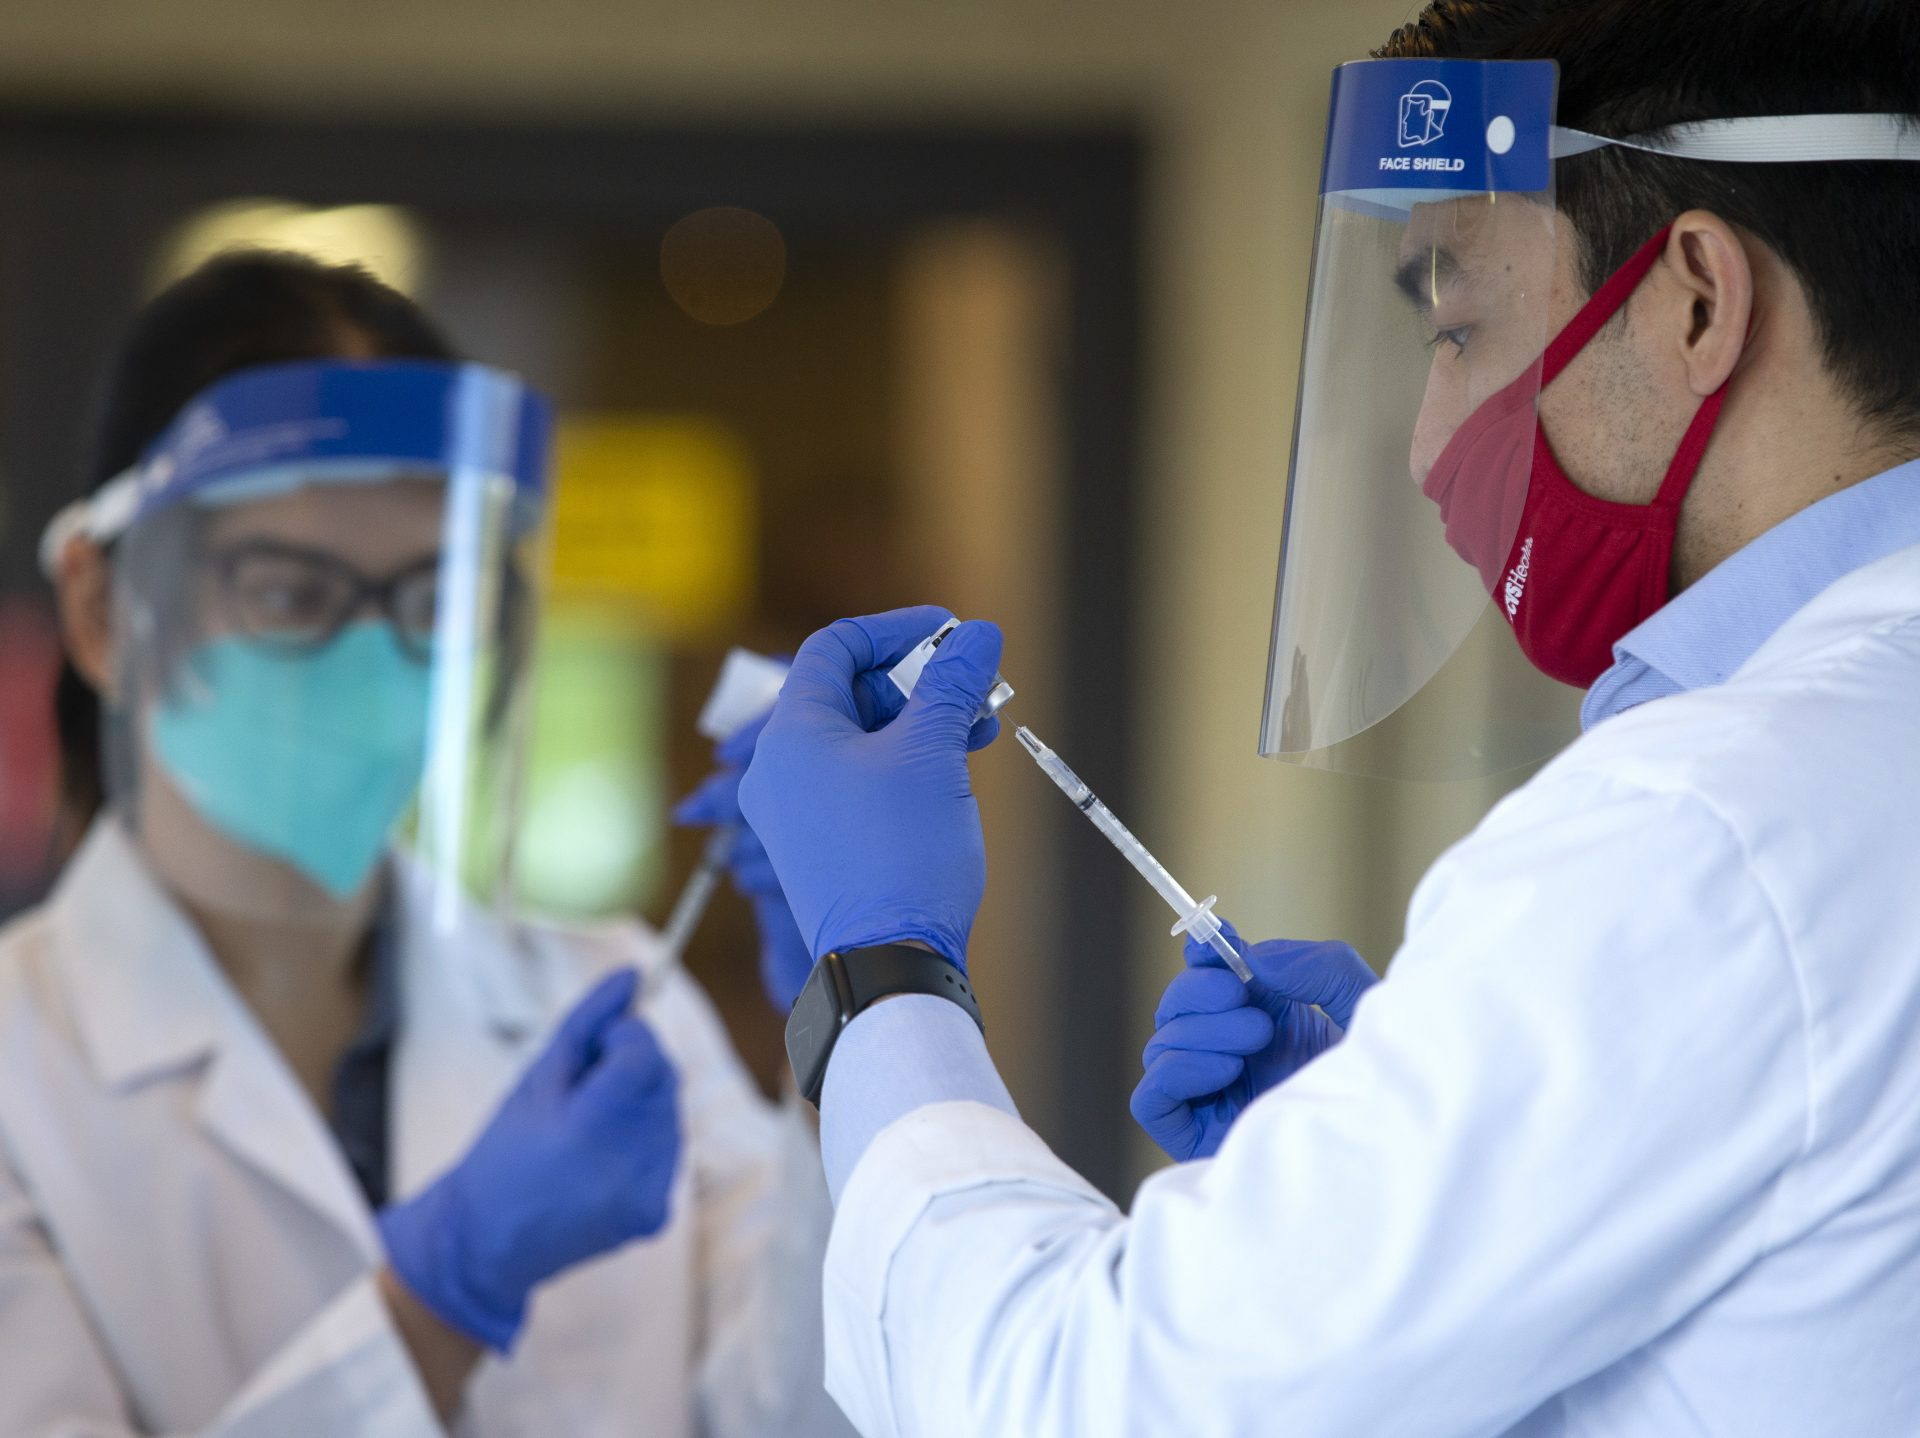 Pharmacists prepare doses of the COVID-19 vaccine at the Life Care Center of Kirkland on Dec. 28, 2020 in Kirkland, Washington. The nursing home was an early epicenter for coronavirus outbreaks in the U.S.